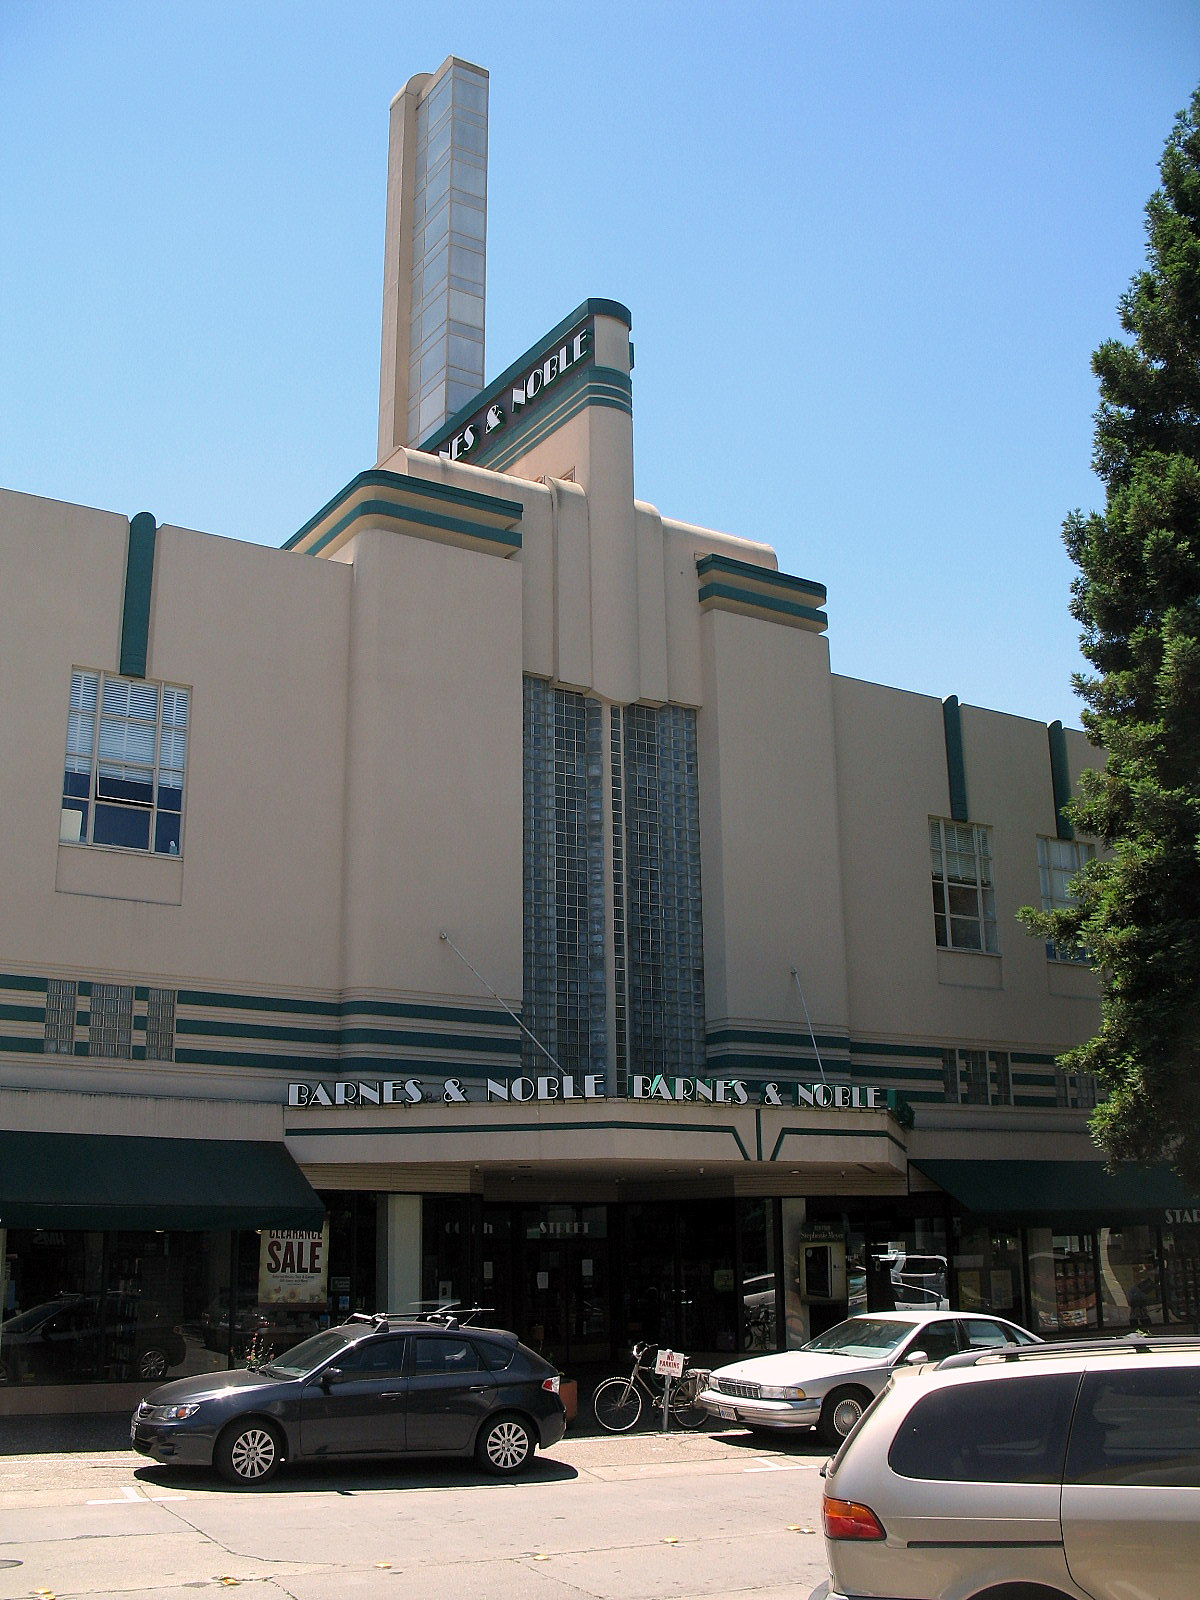 santa rosa california wikipedia